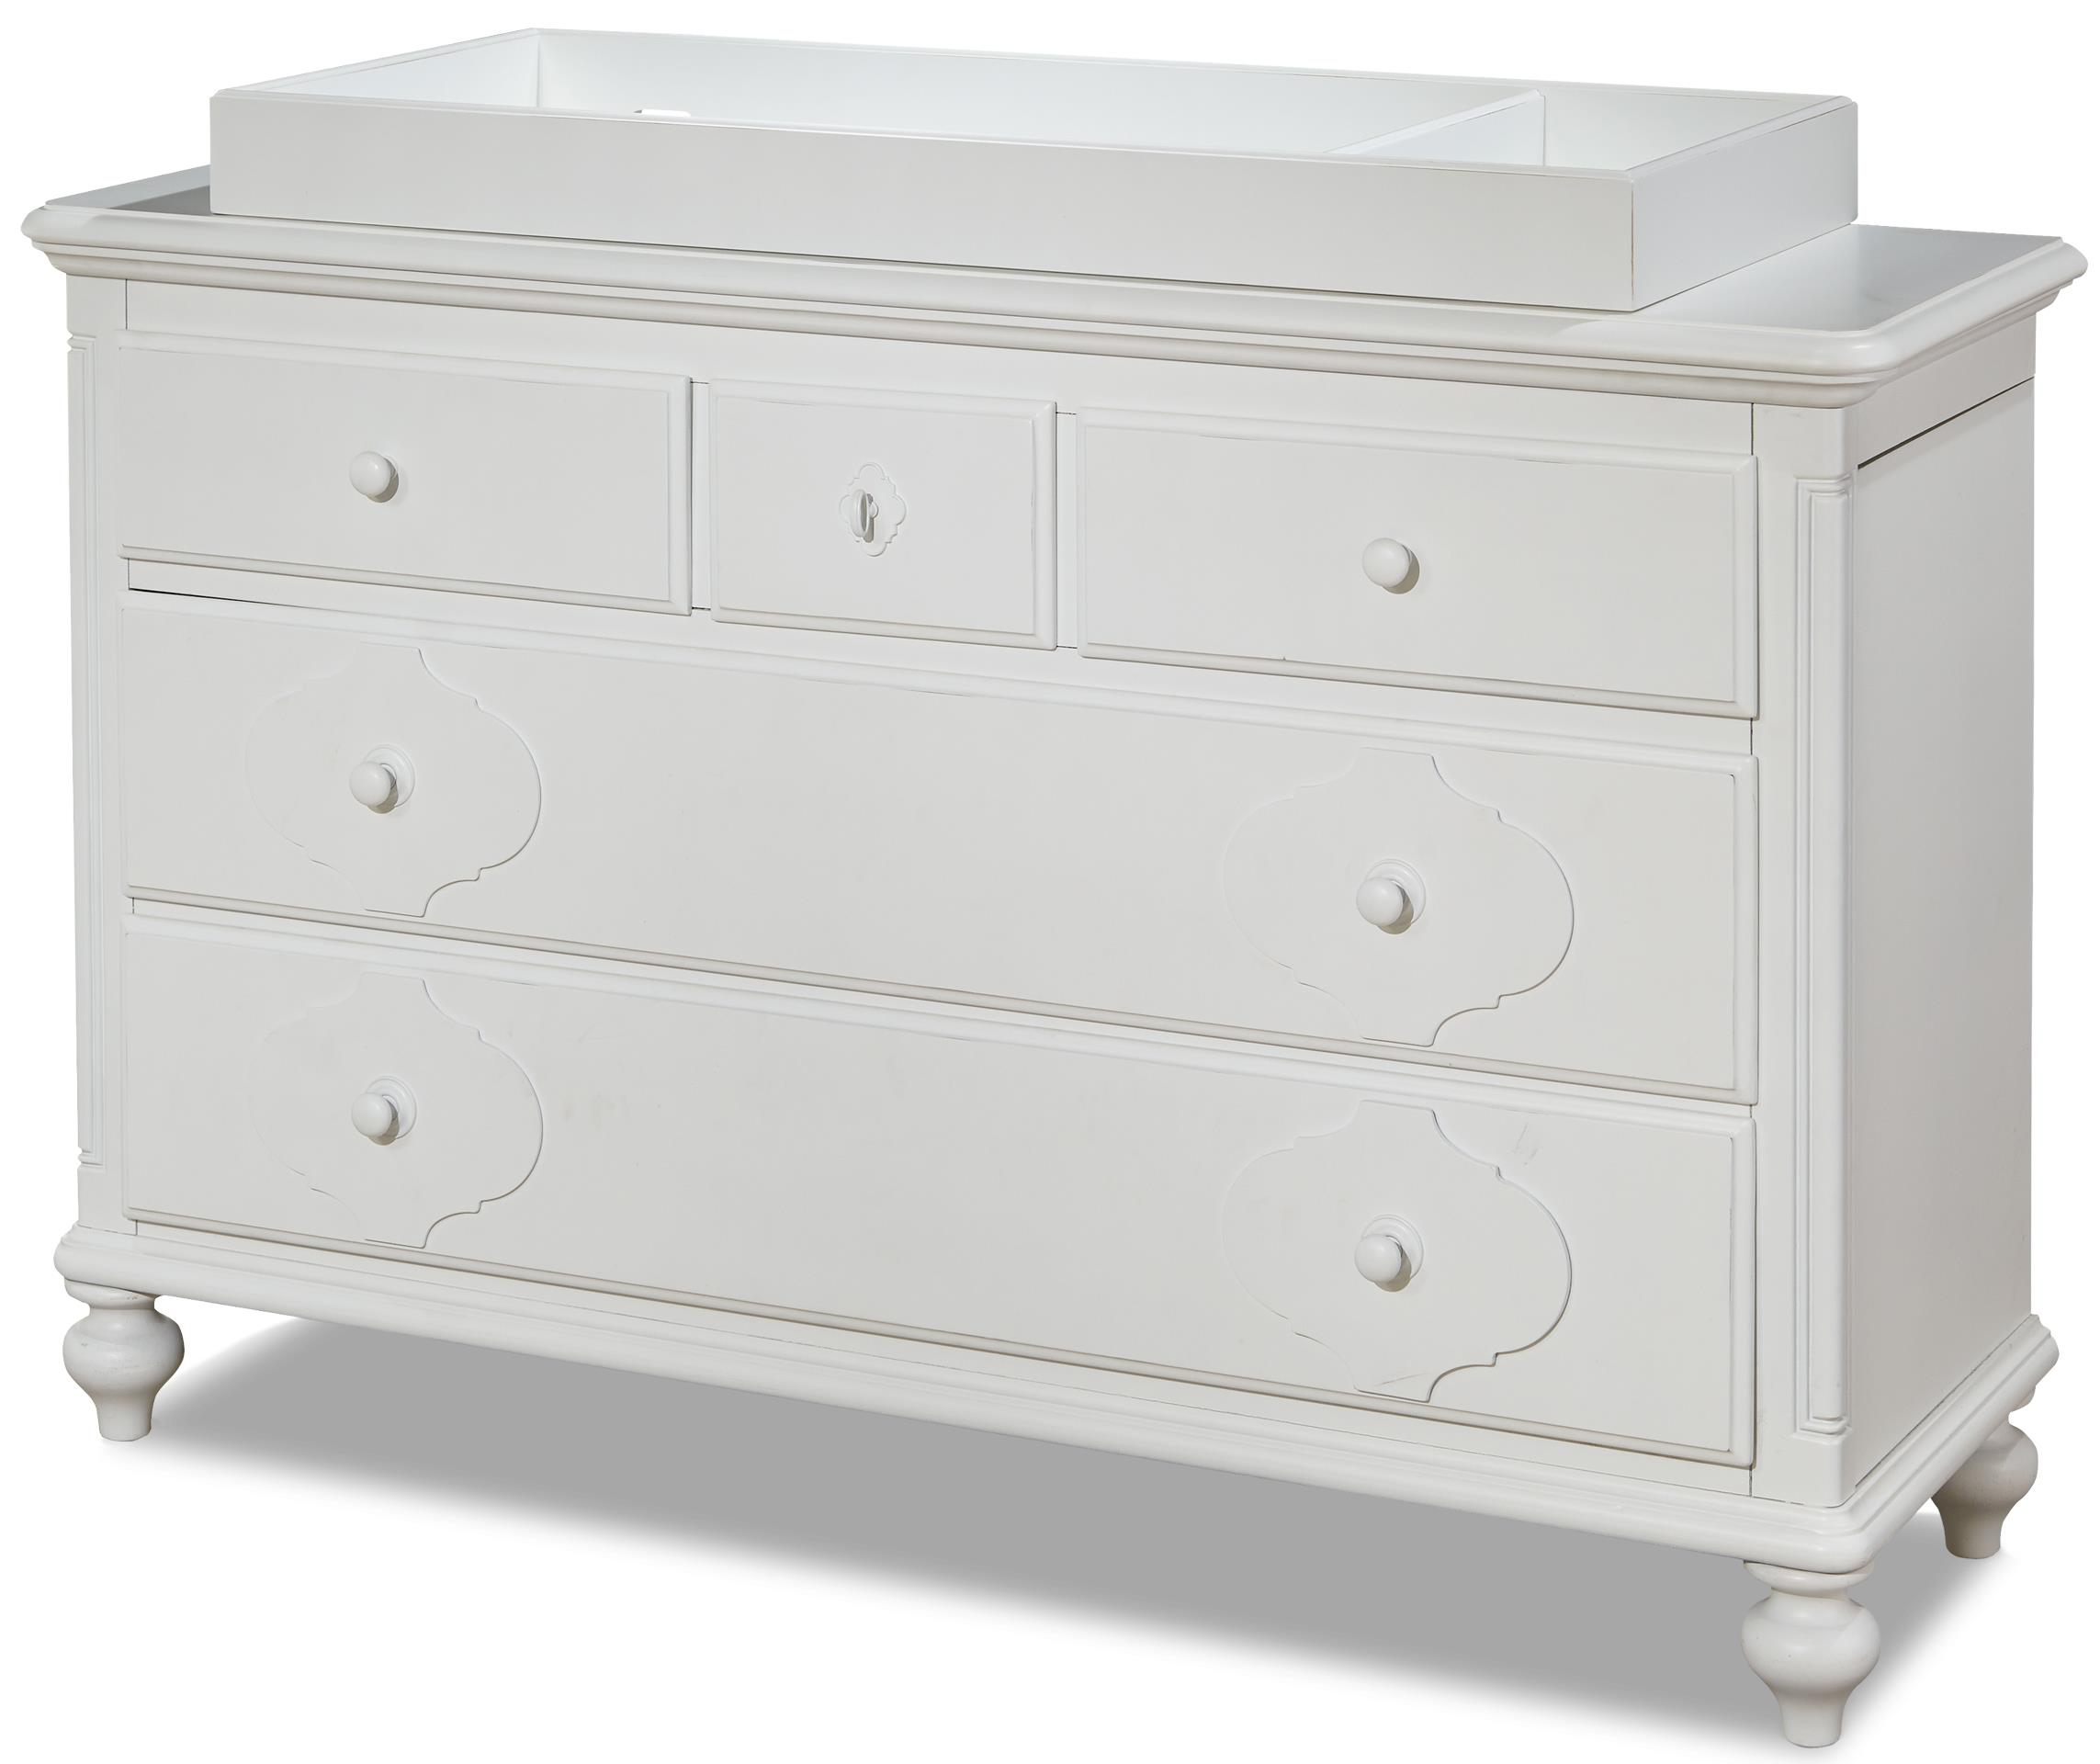 Smartstuff Black and White Dresser with Changing Station - Item Number: 437A002+200